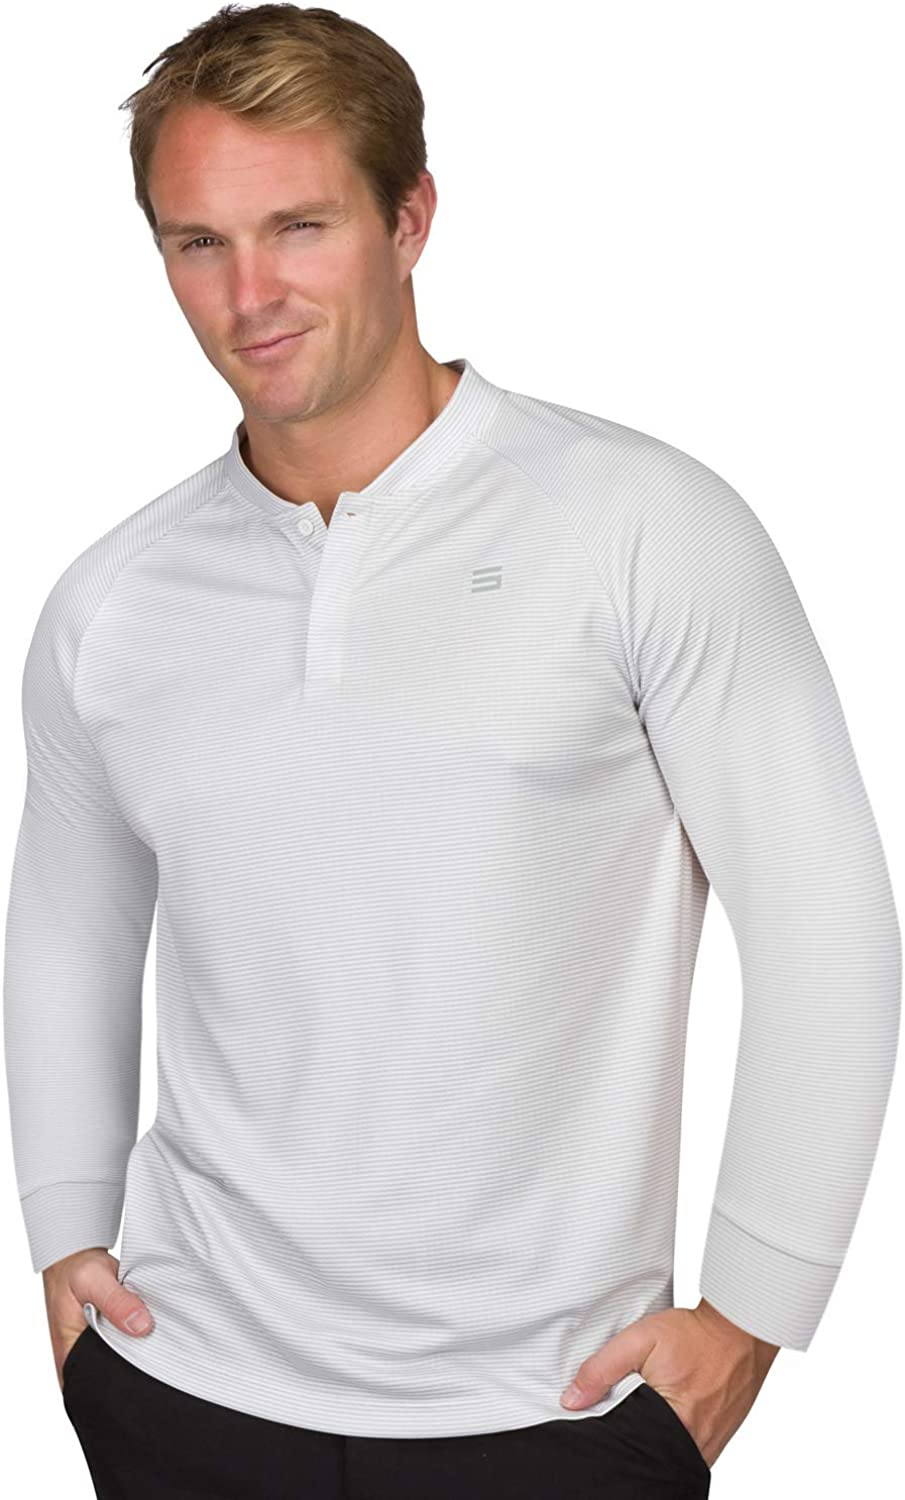 Dry Fit Long Sleeve Collarless Golf Shirts for Men - 4 Way Stretch and Moisture Wicking Golf Polo